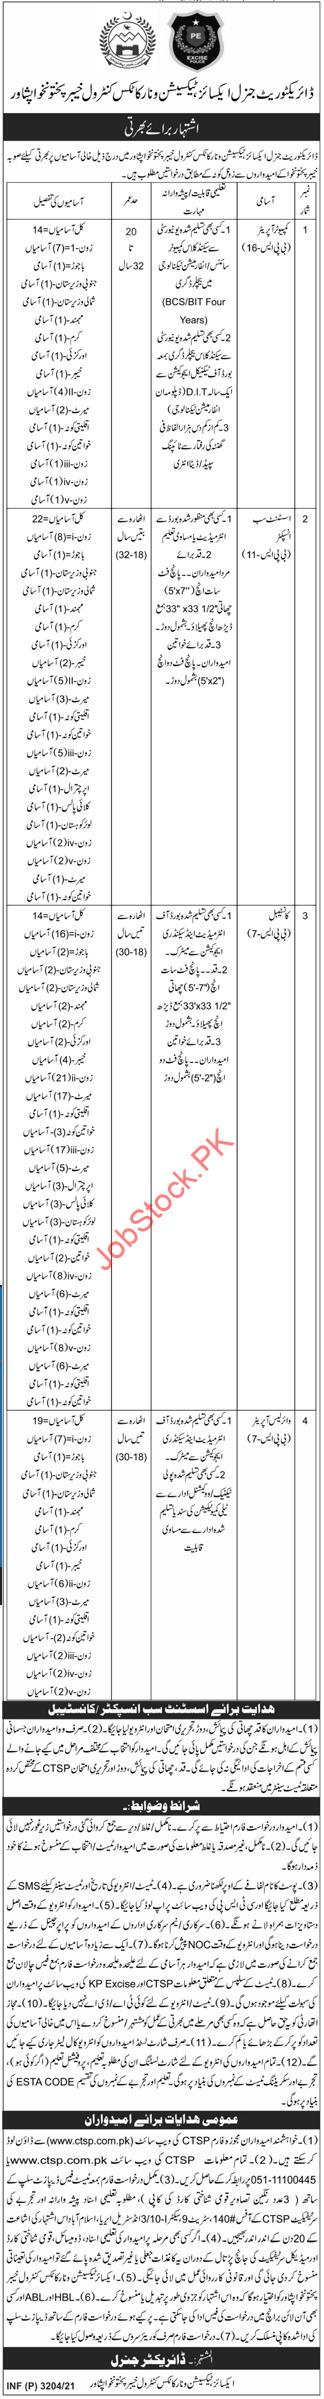 Excise And Taxation Kpk Jobs Advertisement In Urdu